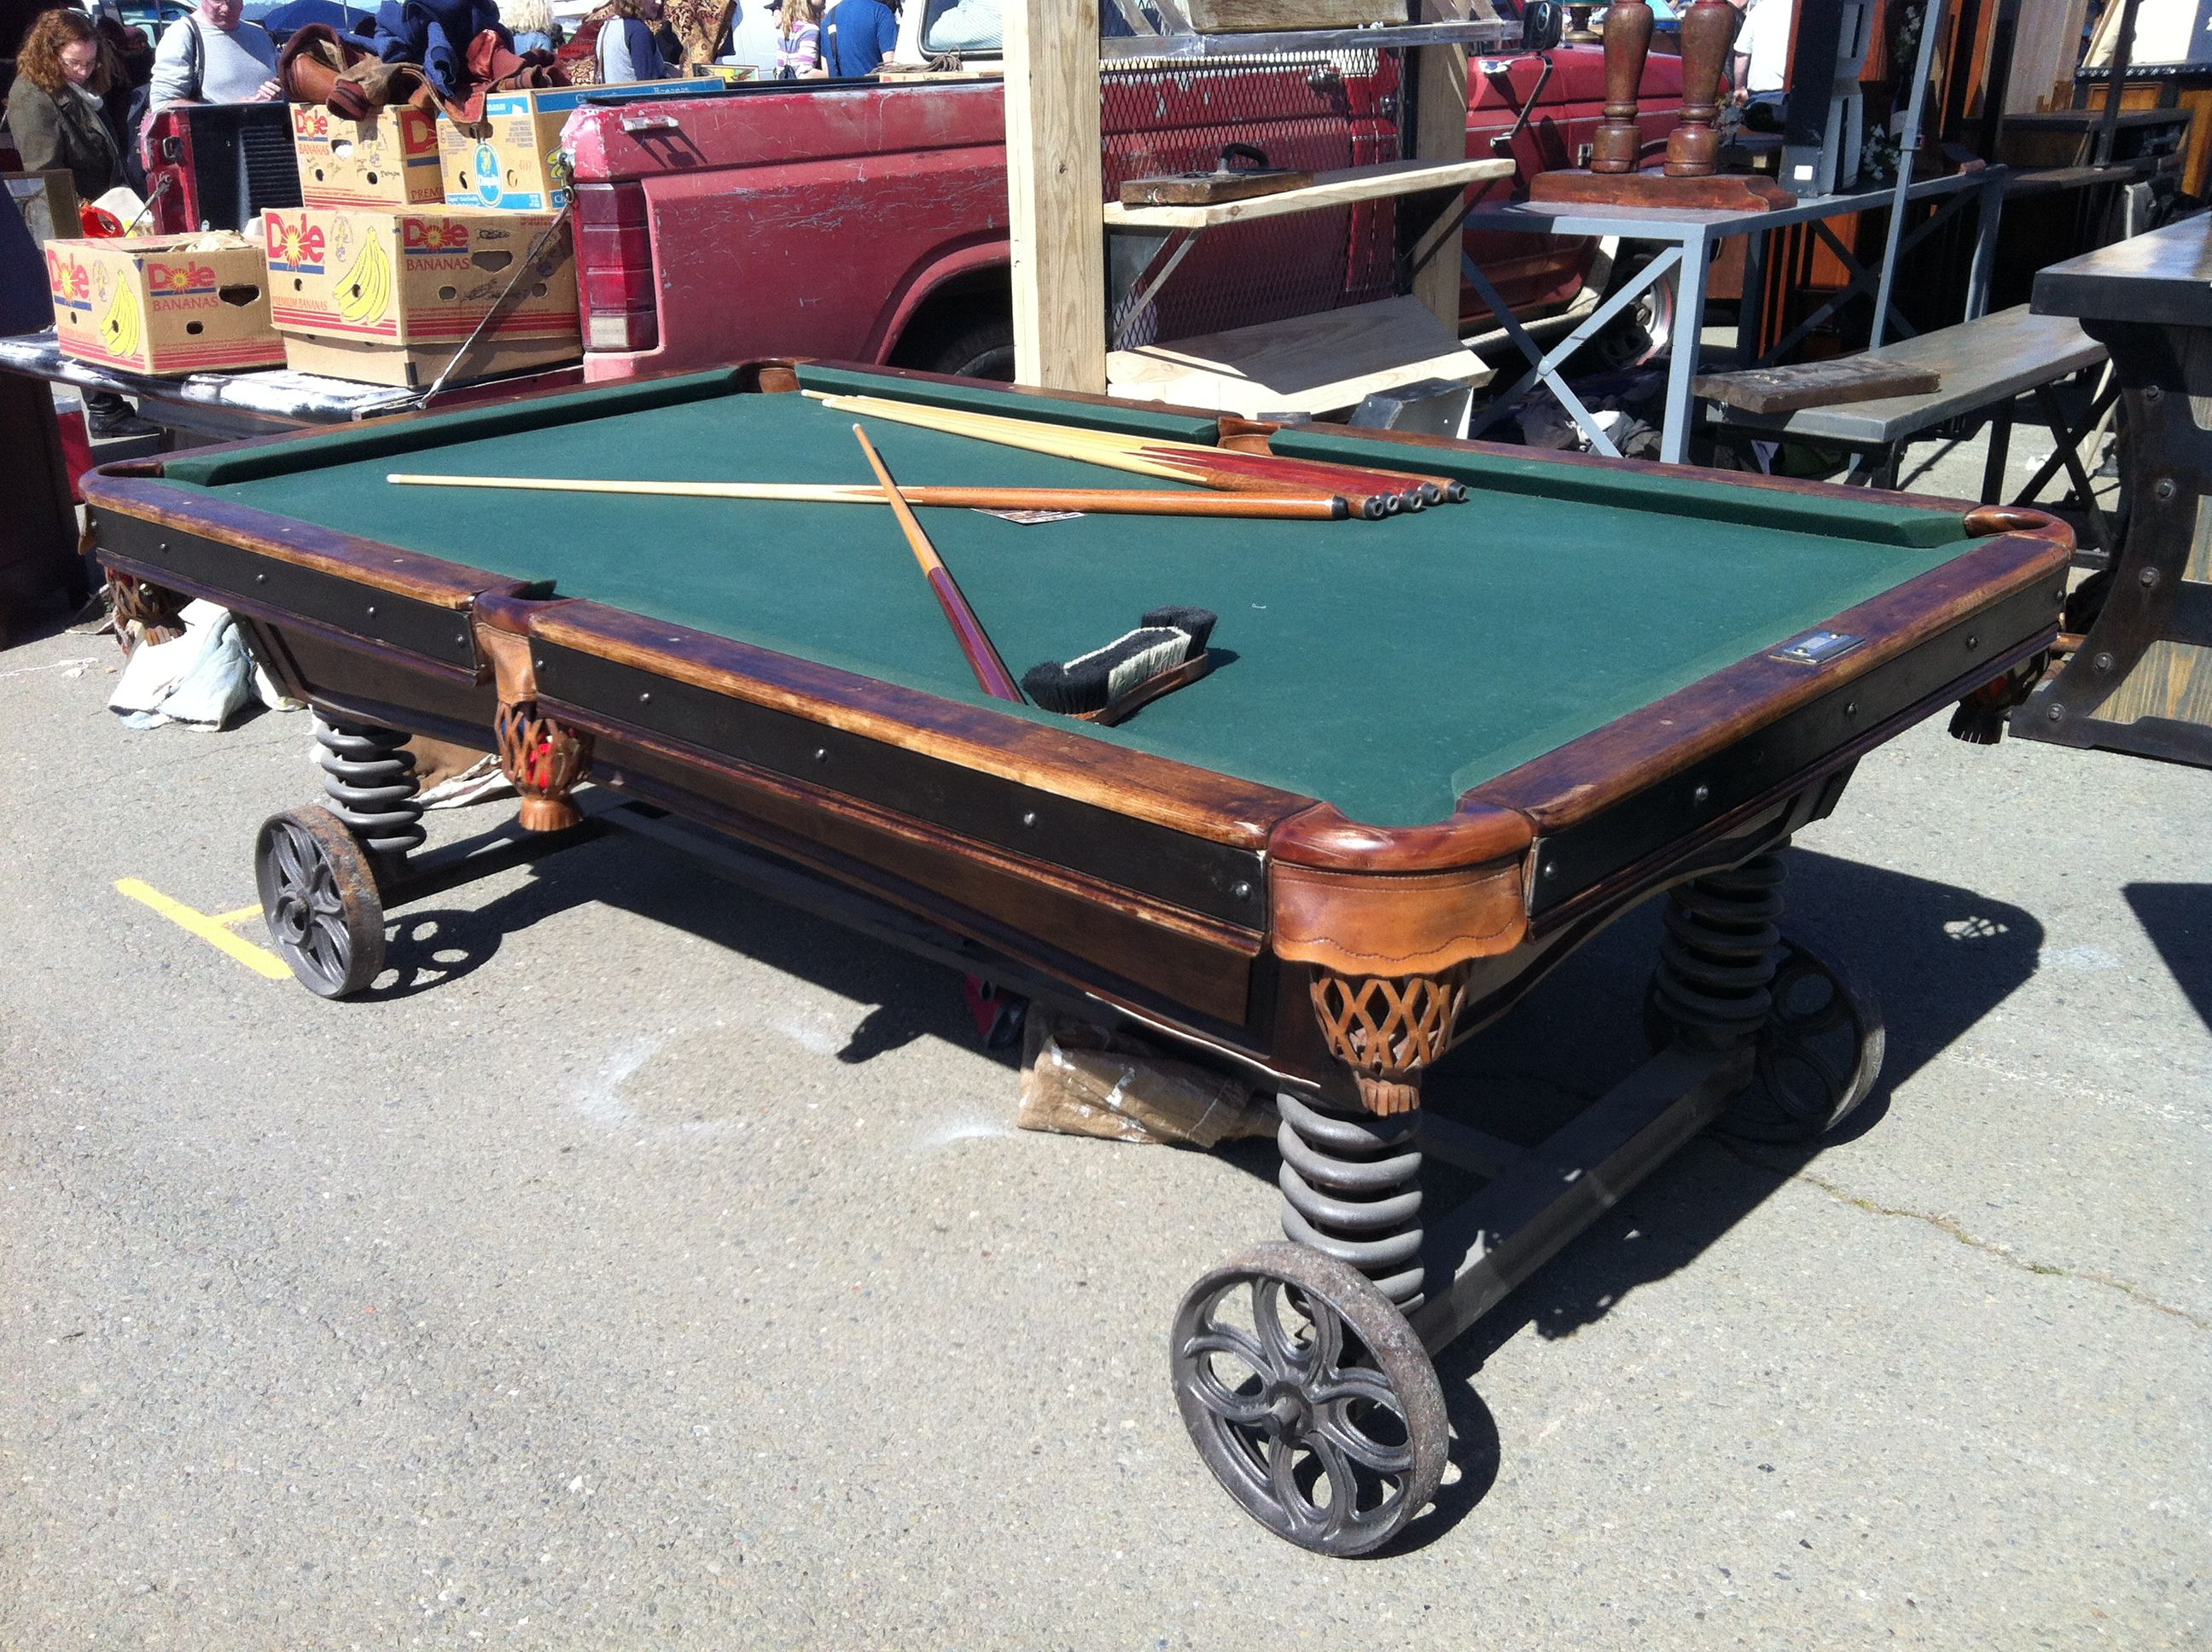 Such A Cool Pool Table. Only Need To Add Casters!